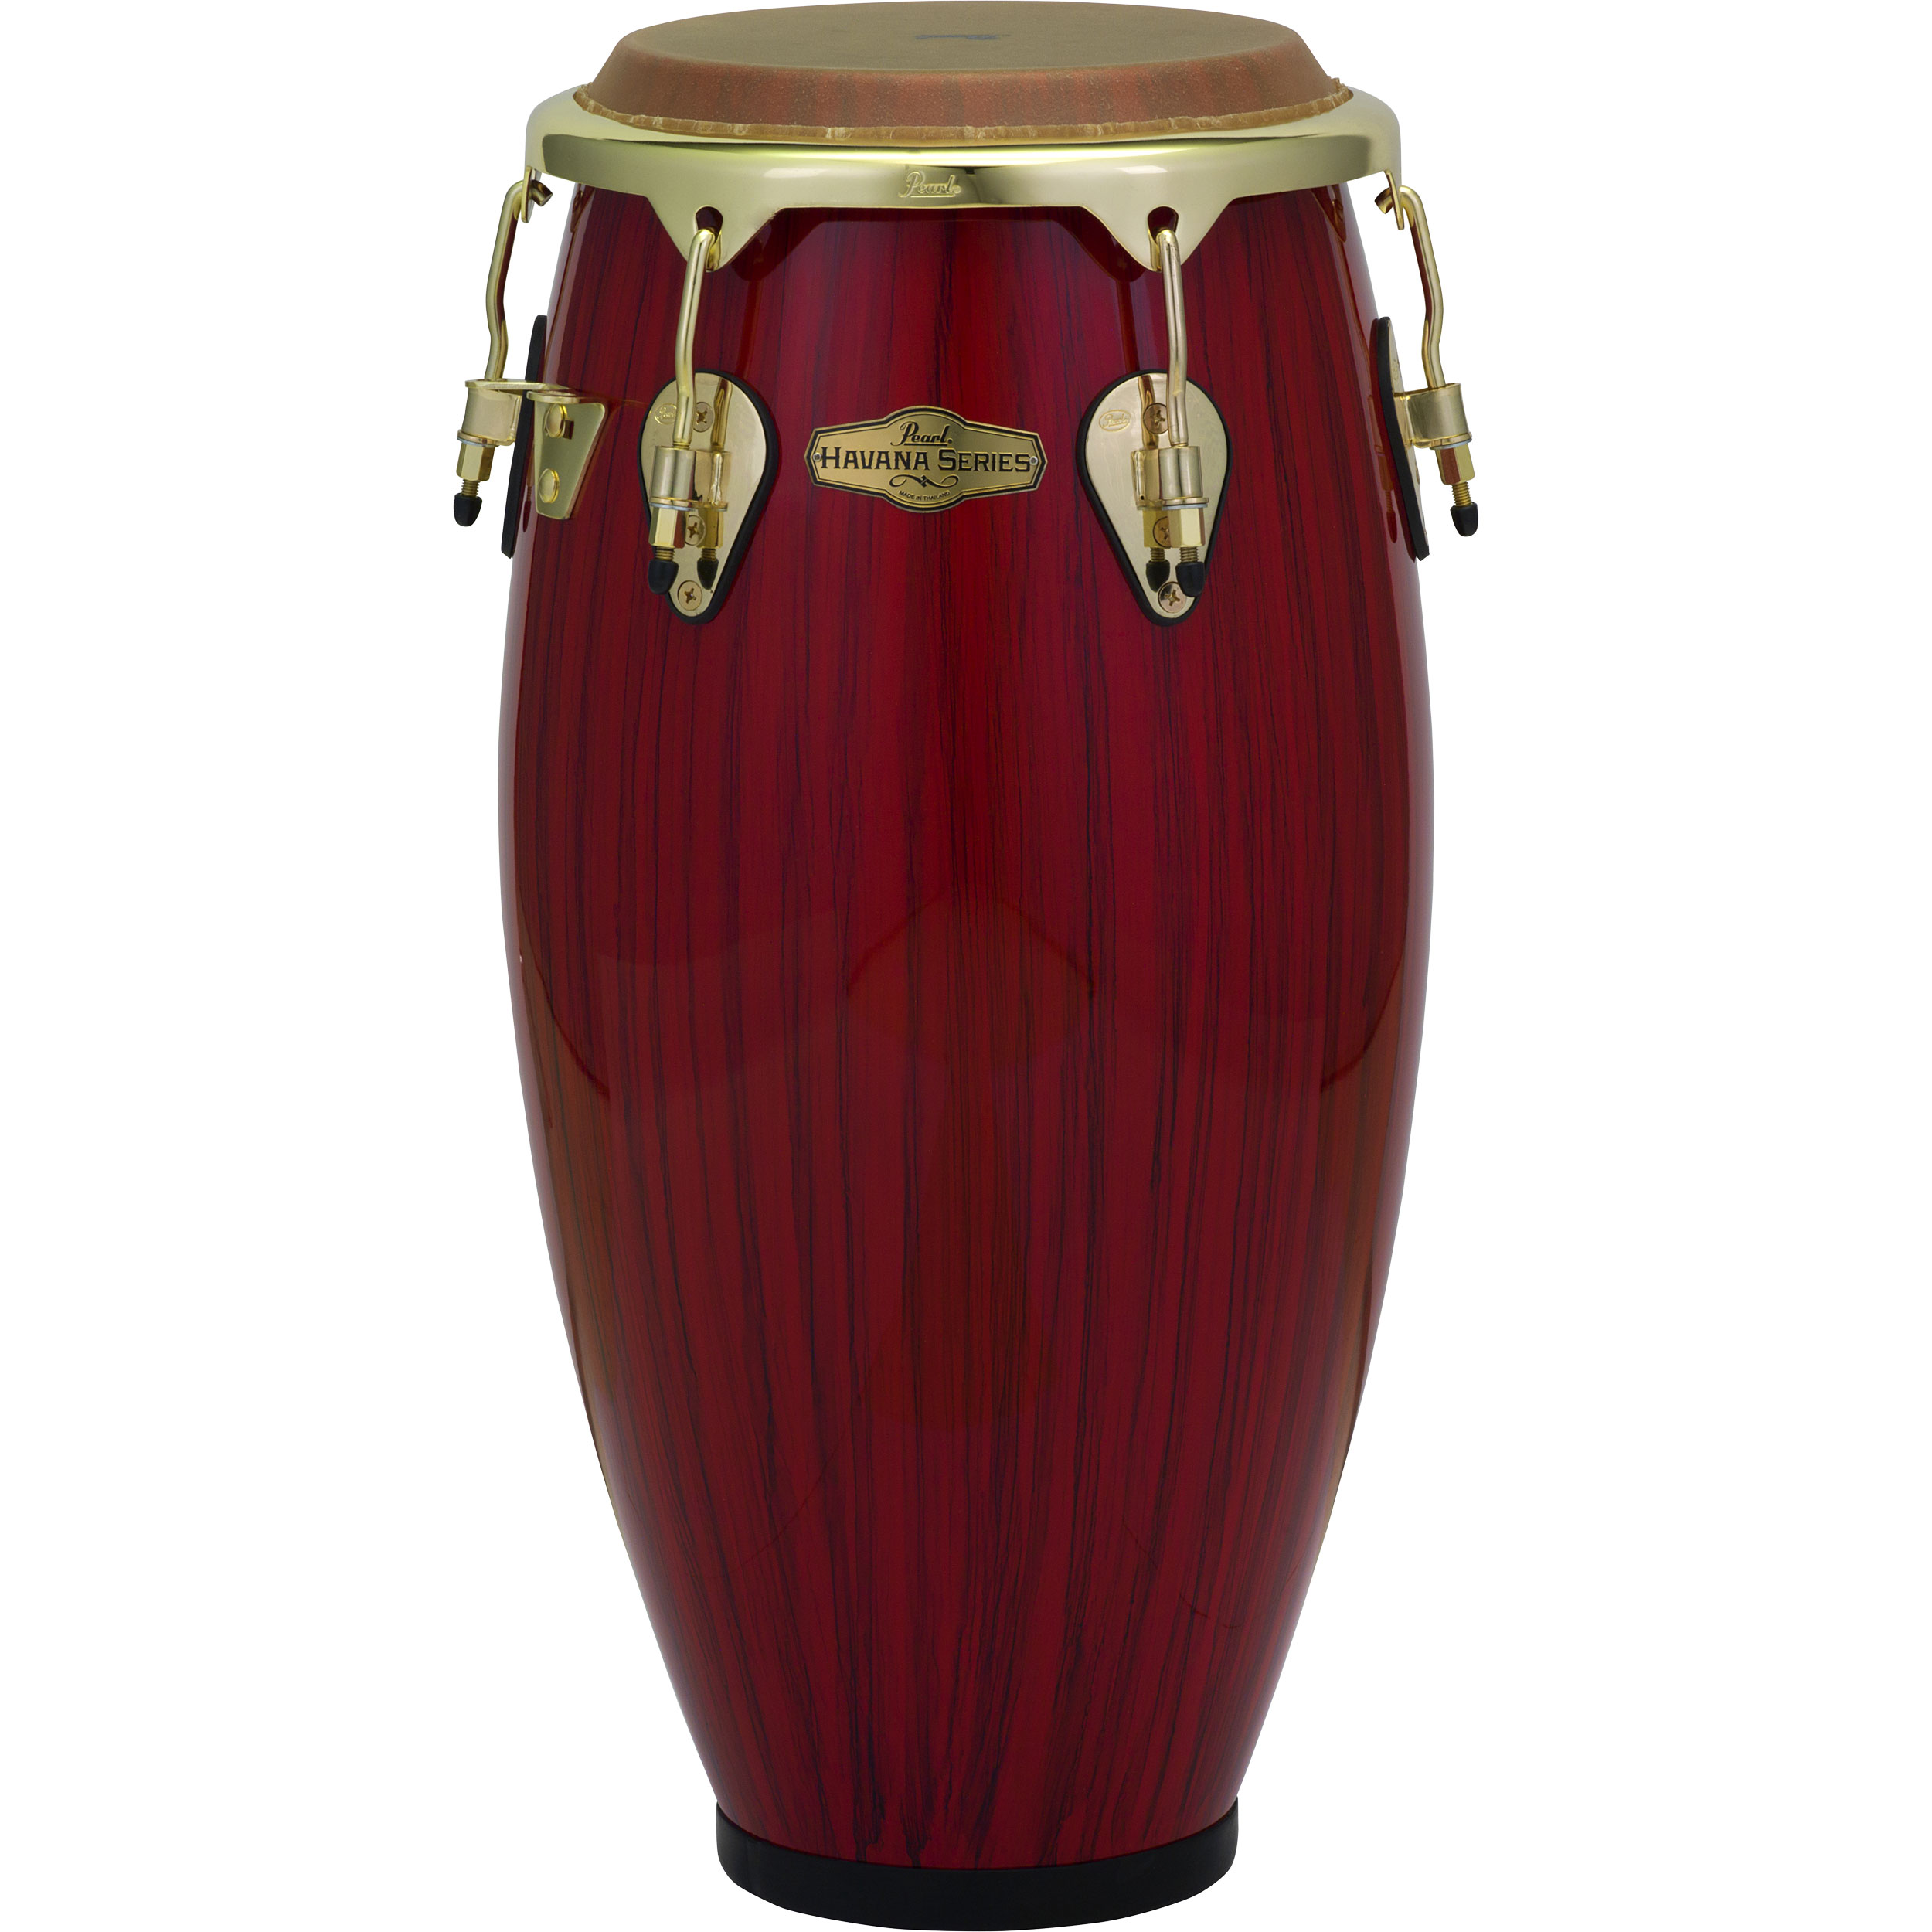 "Pearl 11"" Havana Series Fiberglass Quinto Conga in Red Tiger Stripe with Gold Hardware"